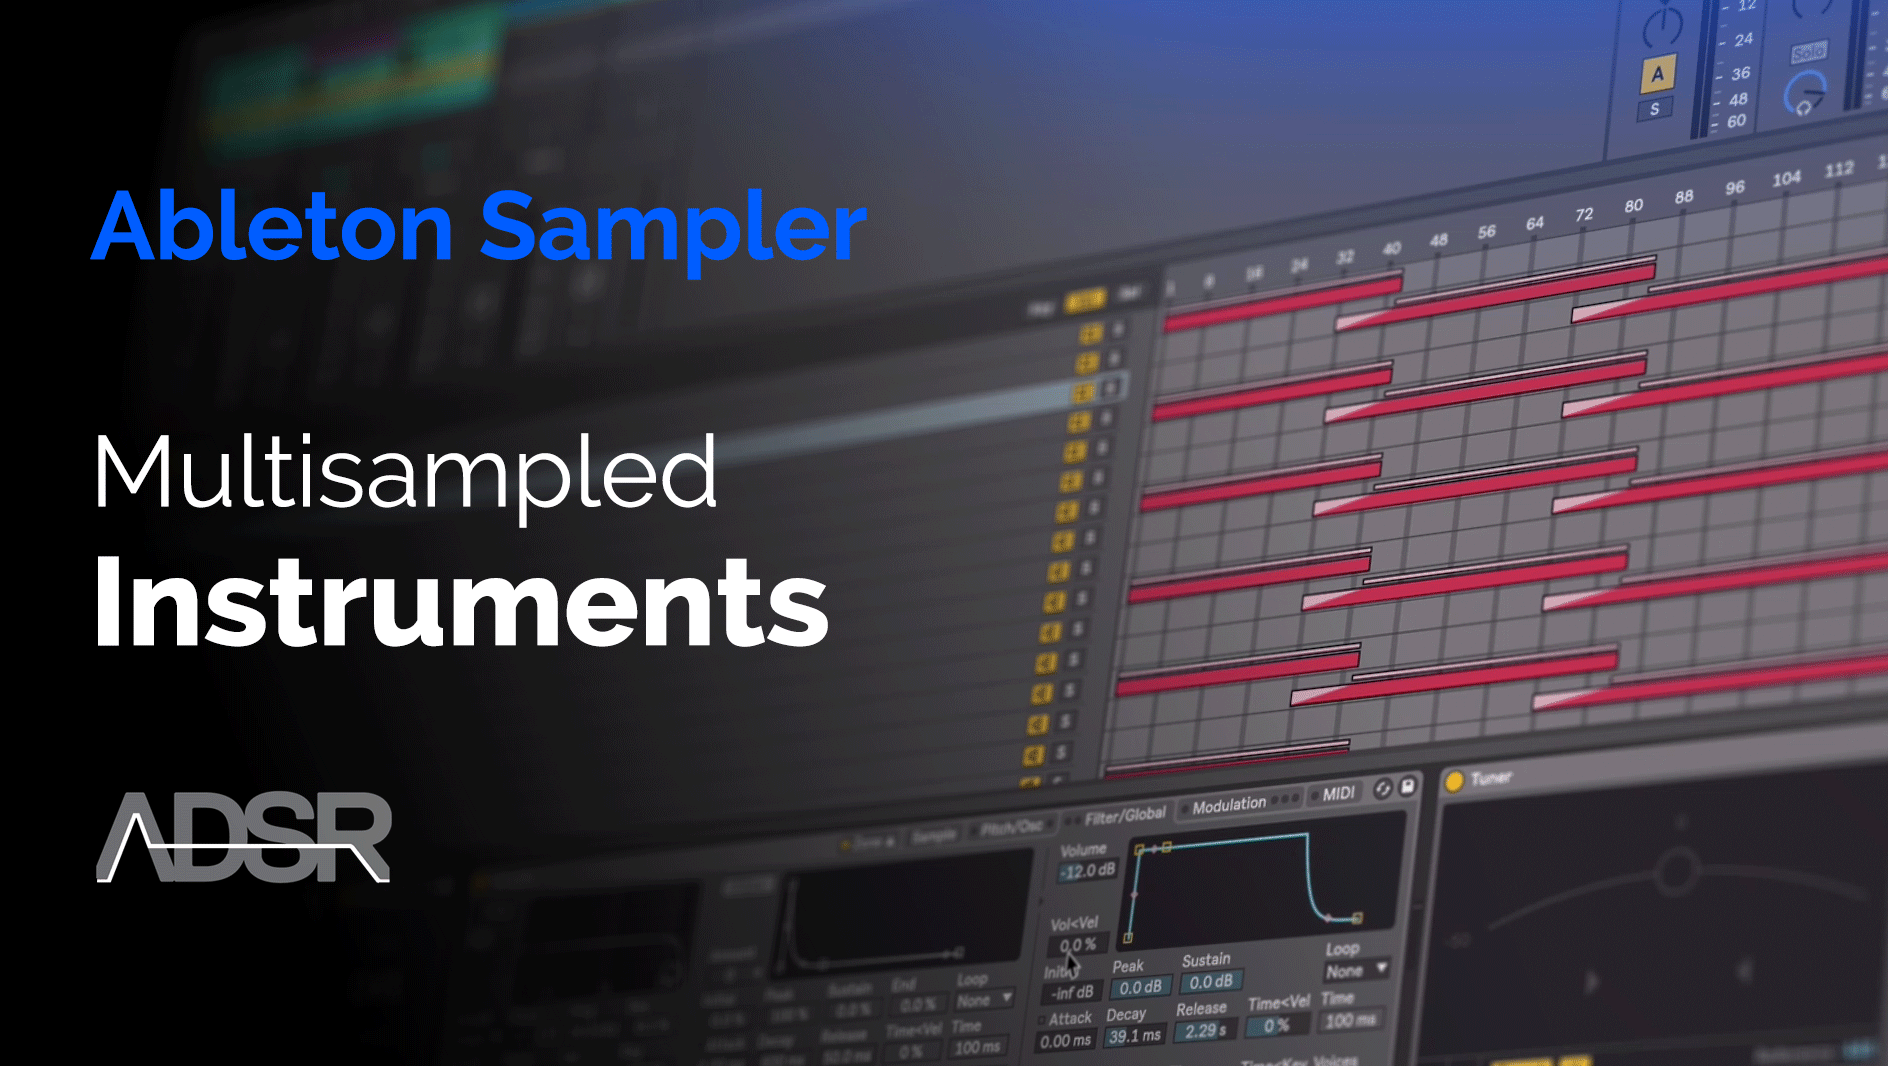 Creating a Multisampled Instrument with Ableton Sampler